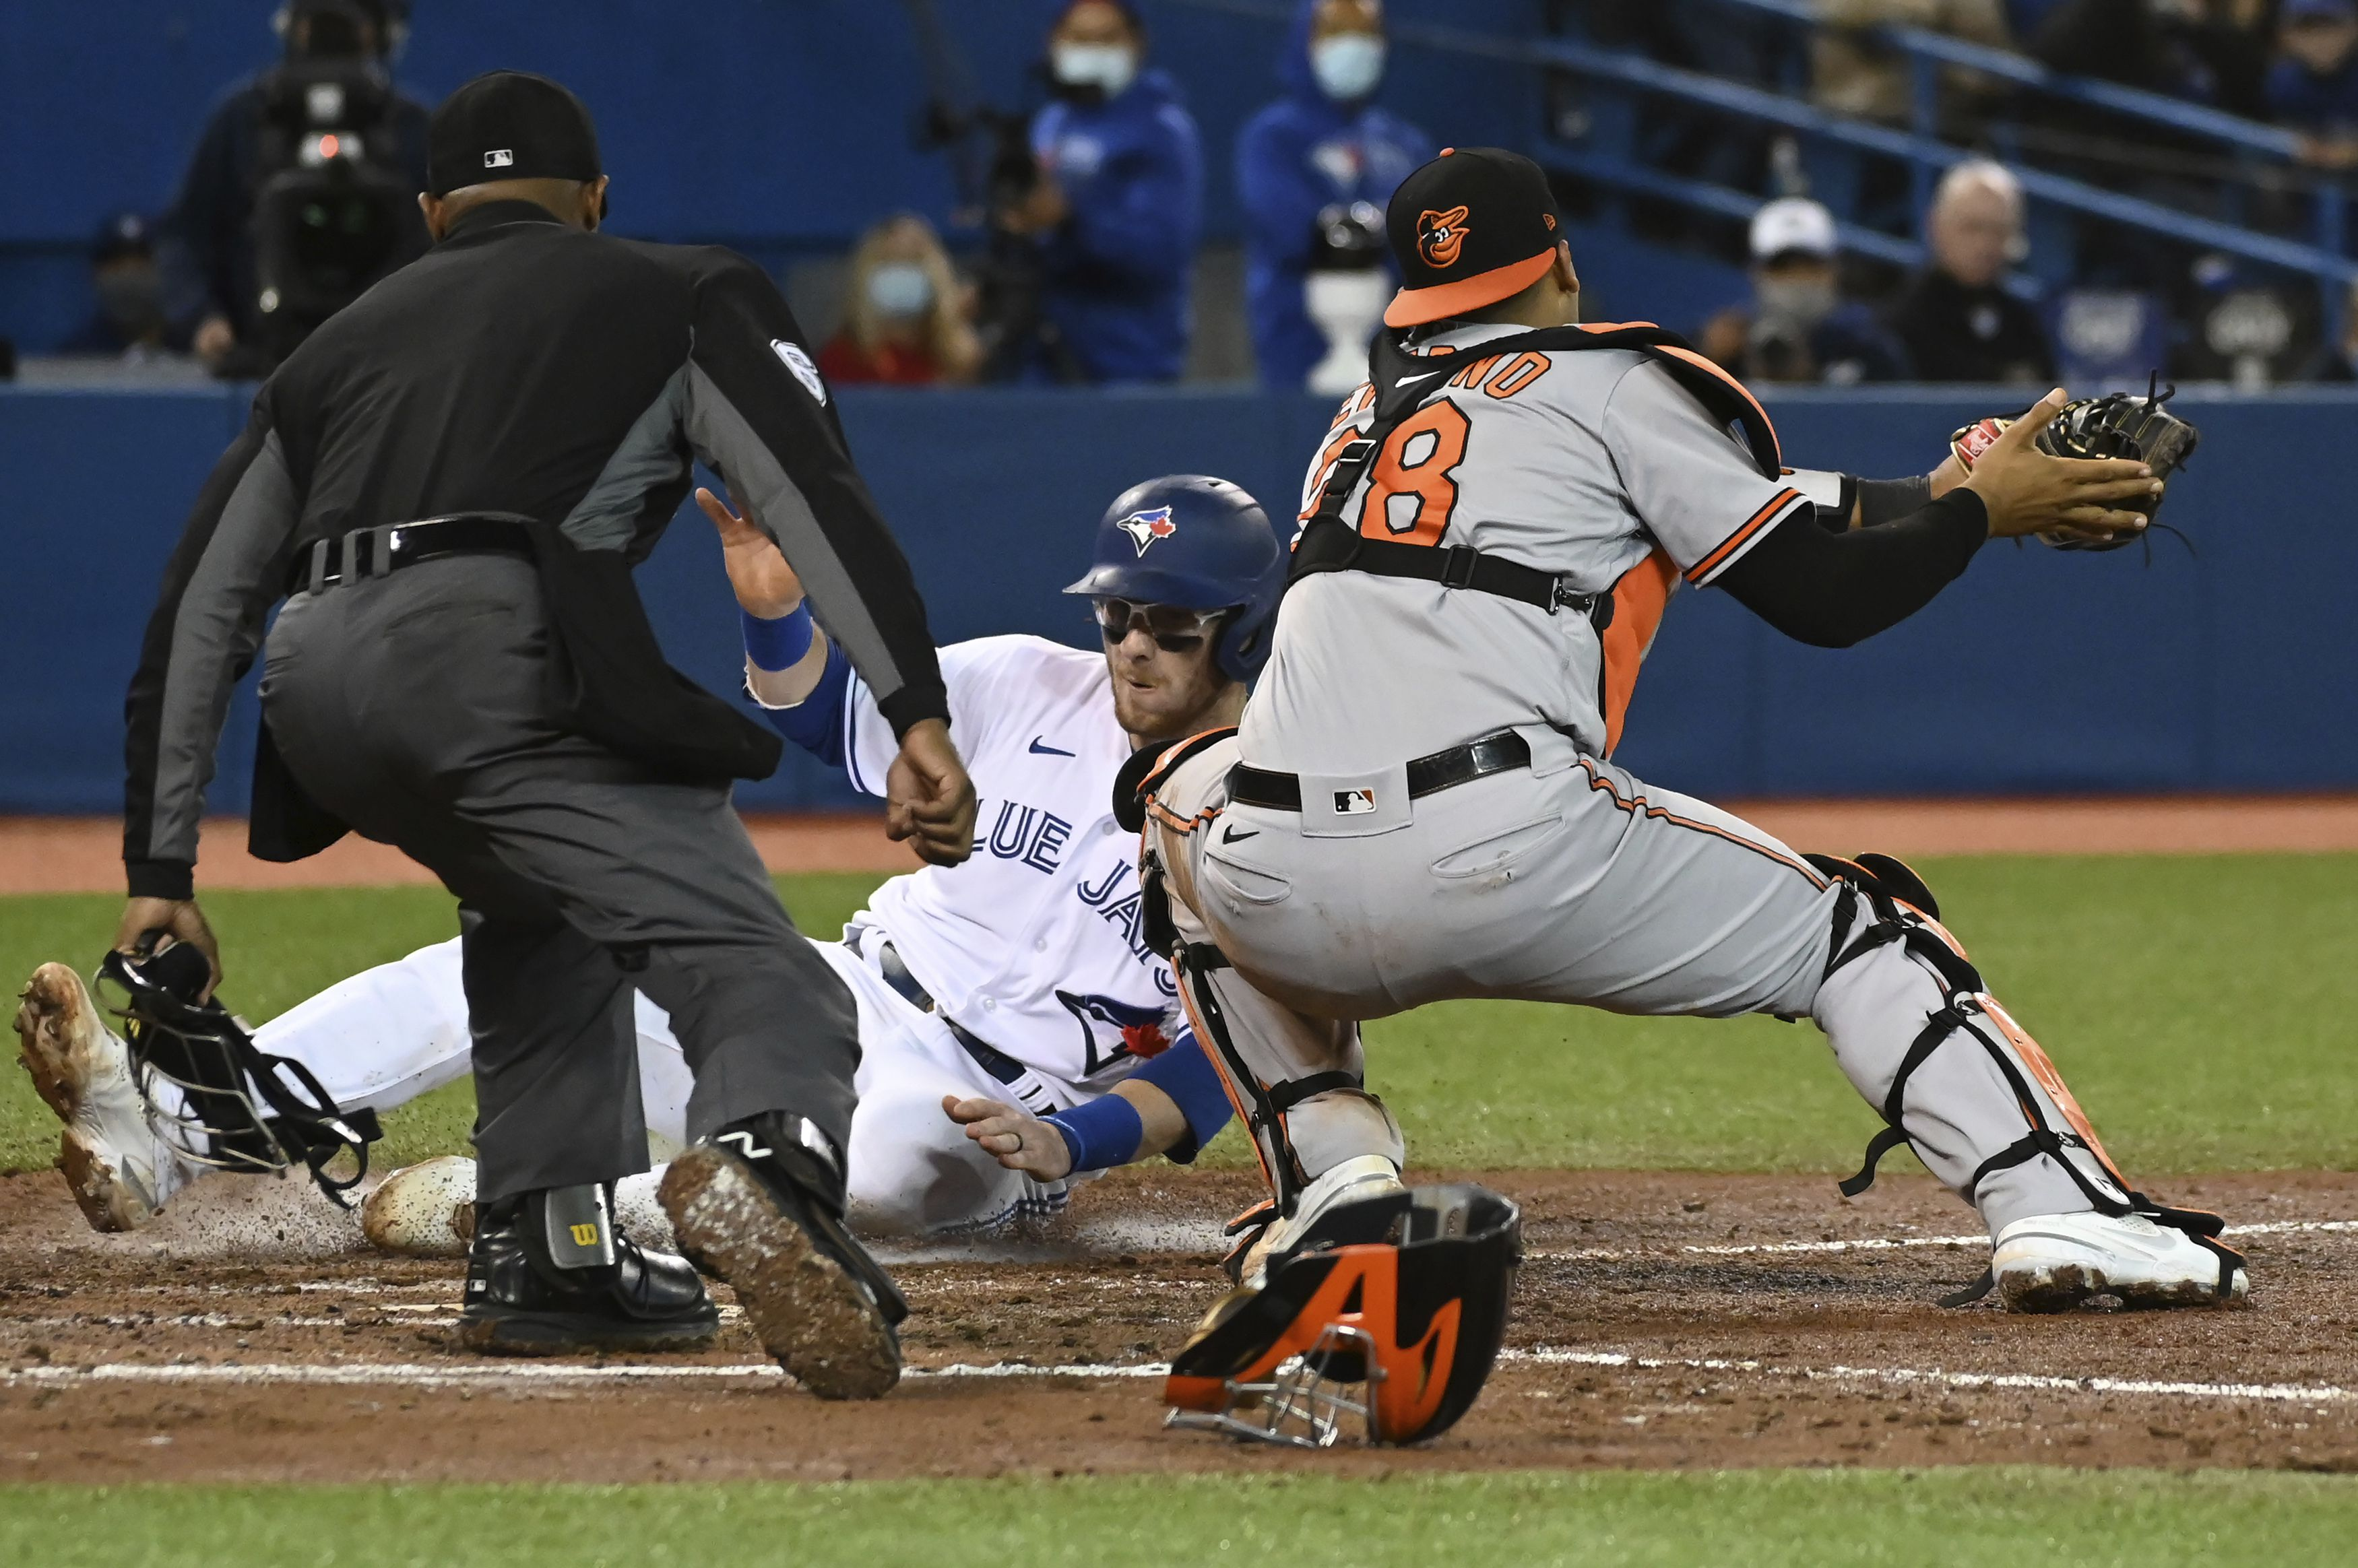 Orioles put up late resistance, but Blue Jays continue playoff push with 6-4 win to open season's final series